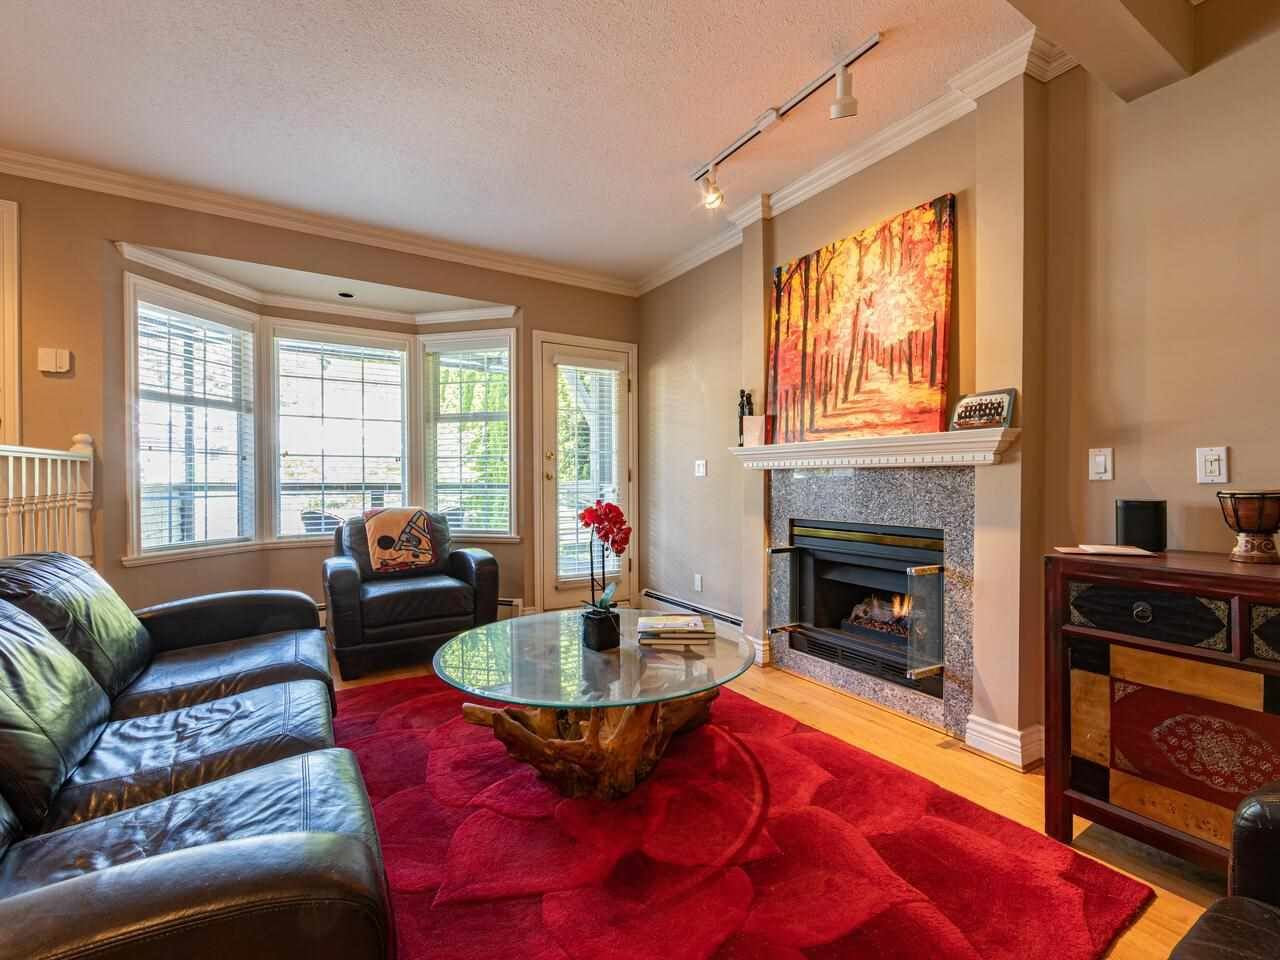 Photo of 1079 CLEMENTS AVENUE, North Vancouver, BC V7R 2L3 (MLS # R2584562)